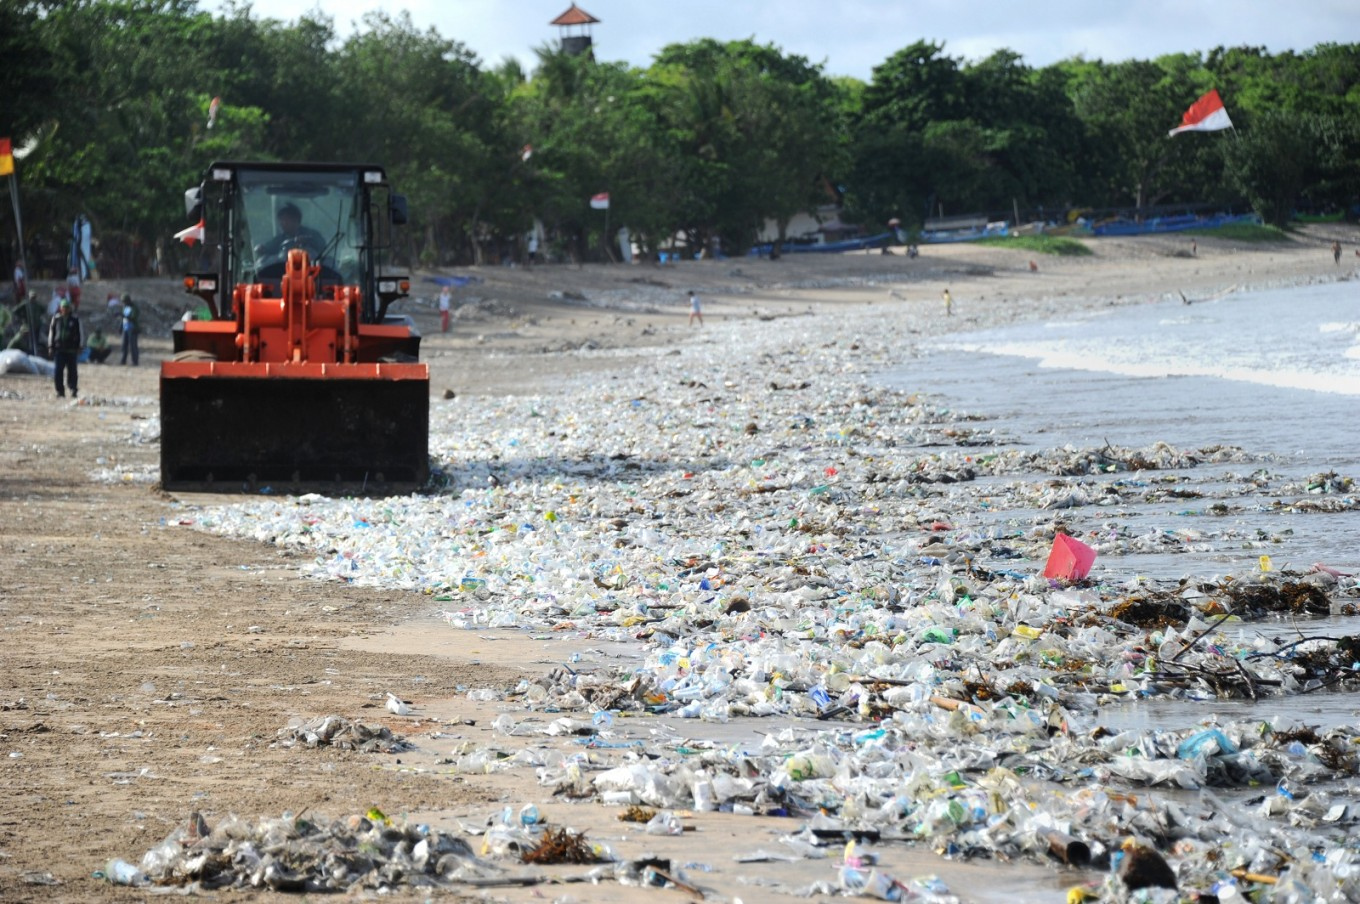 Trash heroes and scavenger apps battle Bali 'garbage emergency'